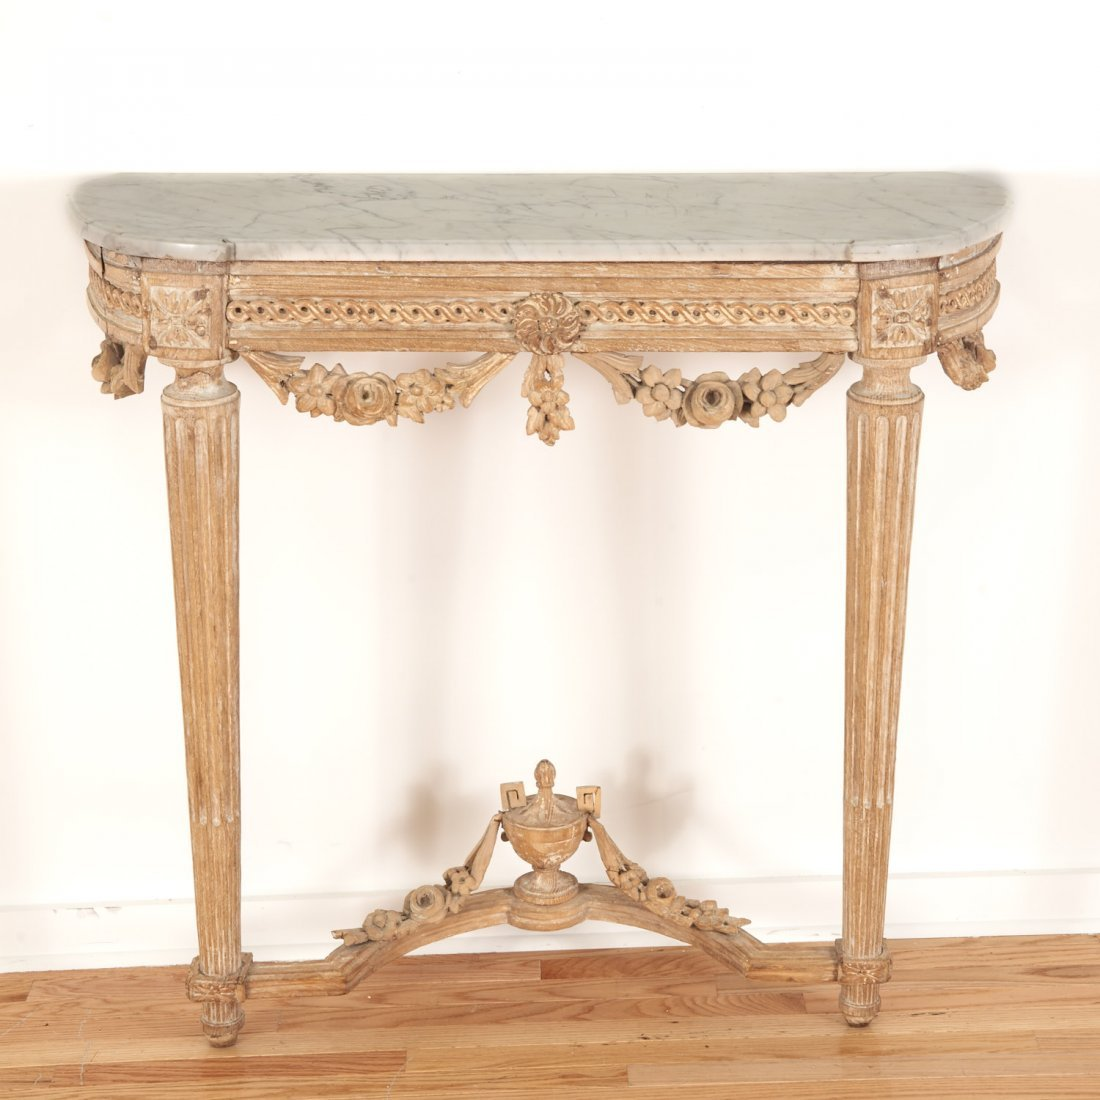 Louis XVI marble top limed wood console